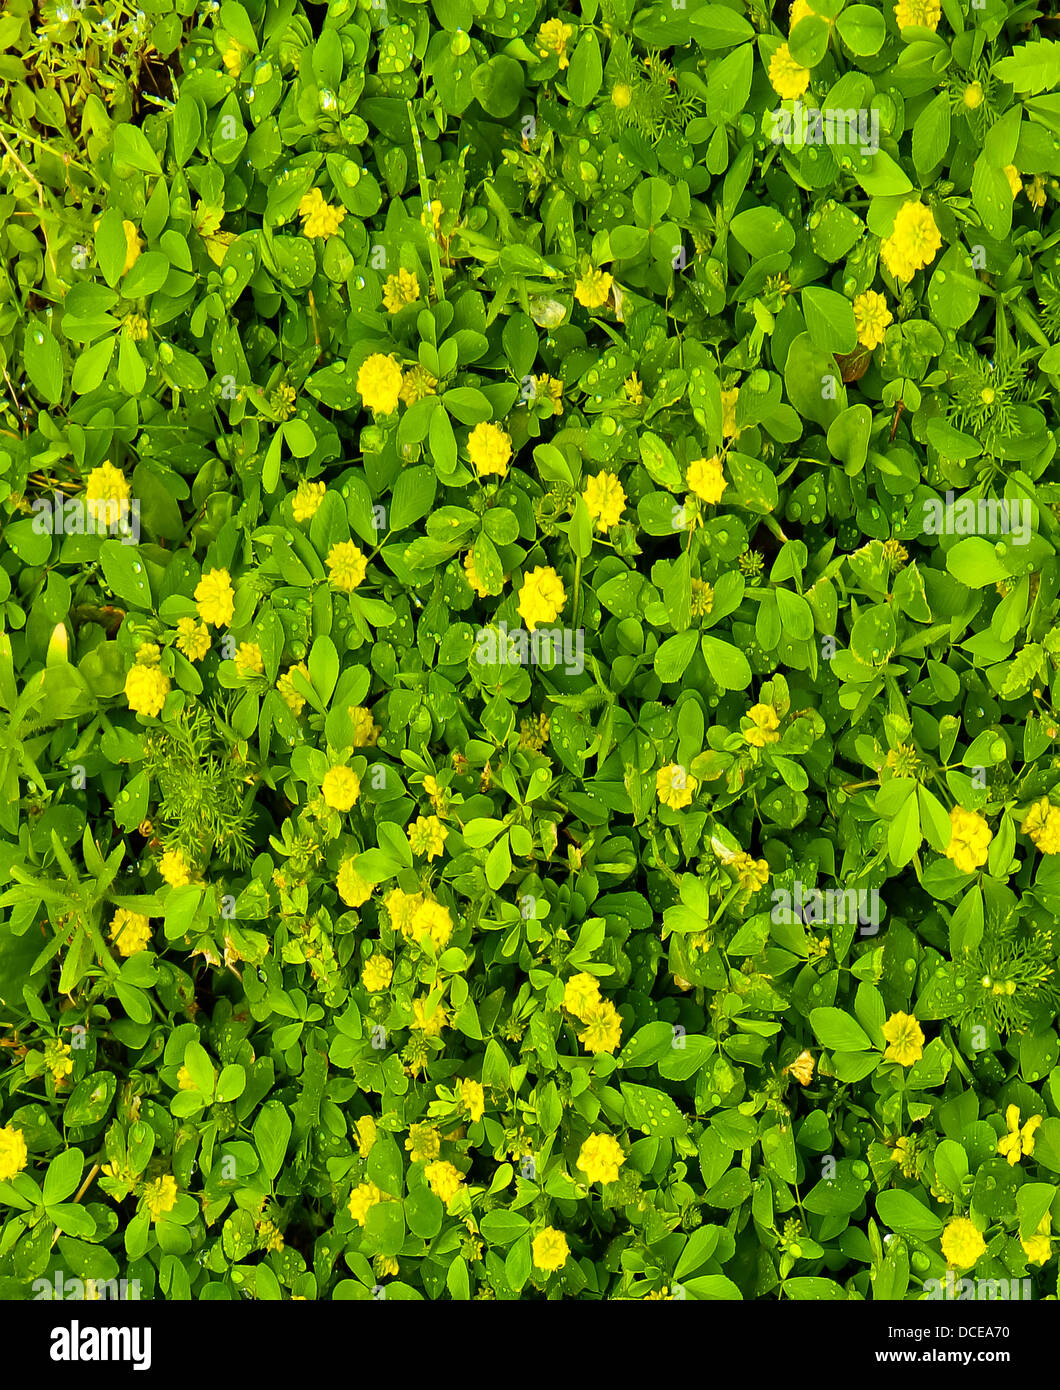 Tiny yellow flowers on green leaf background with water droplets tiny yellow flowers on green leaf background with water droplets visible when you zoom in mightylinksfo